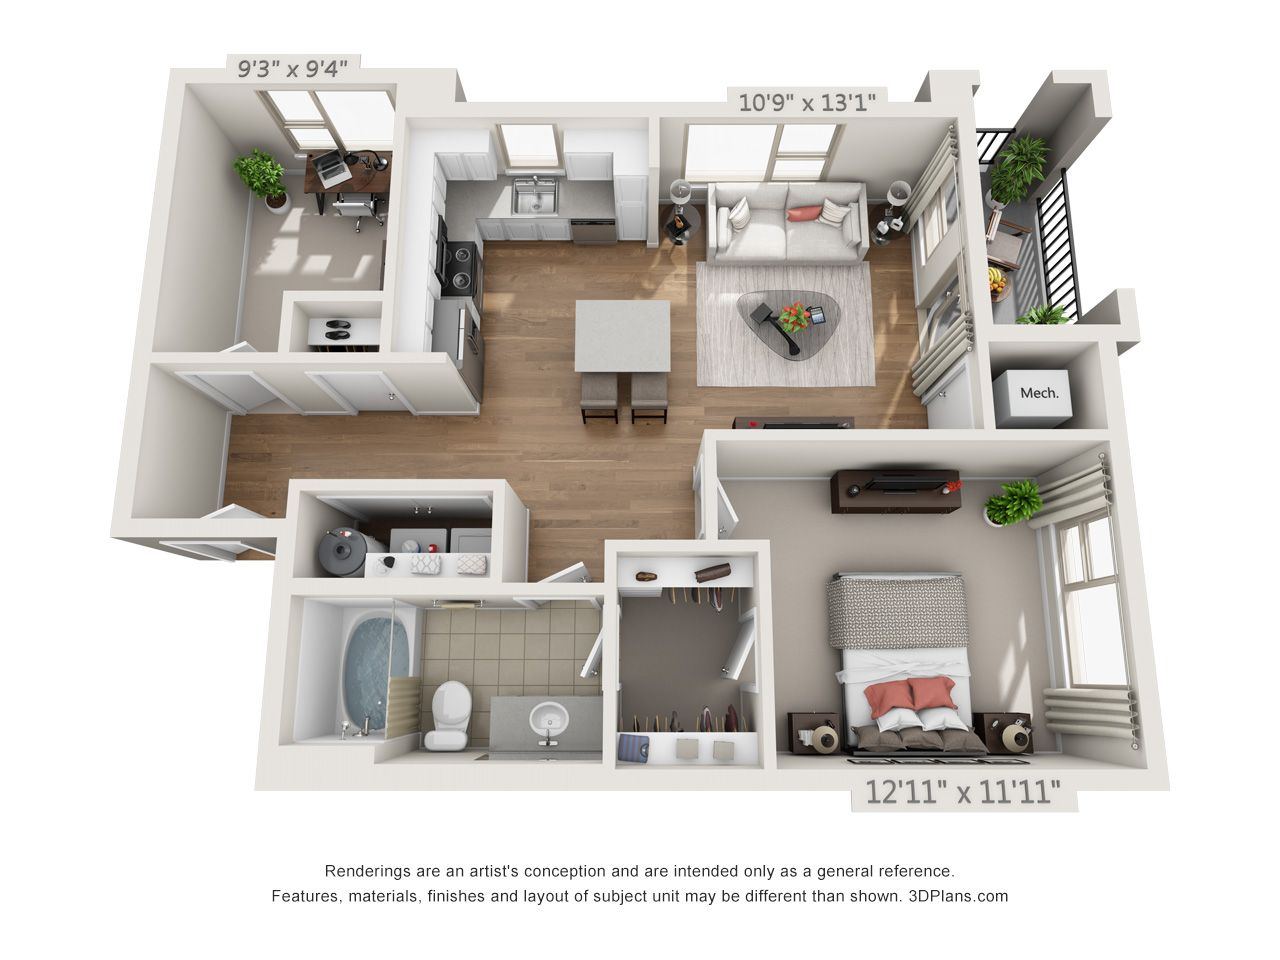 3 Bedroom Apartments In Phoenixville Sims House Plans Sims House Design Apartment Floor Plans